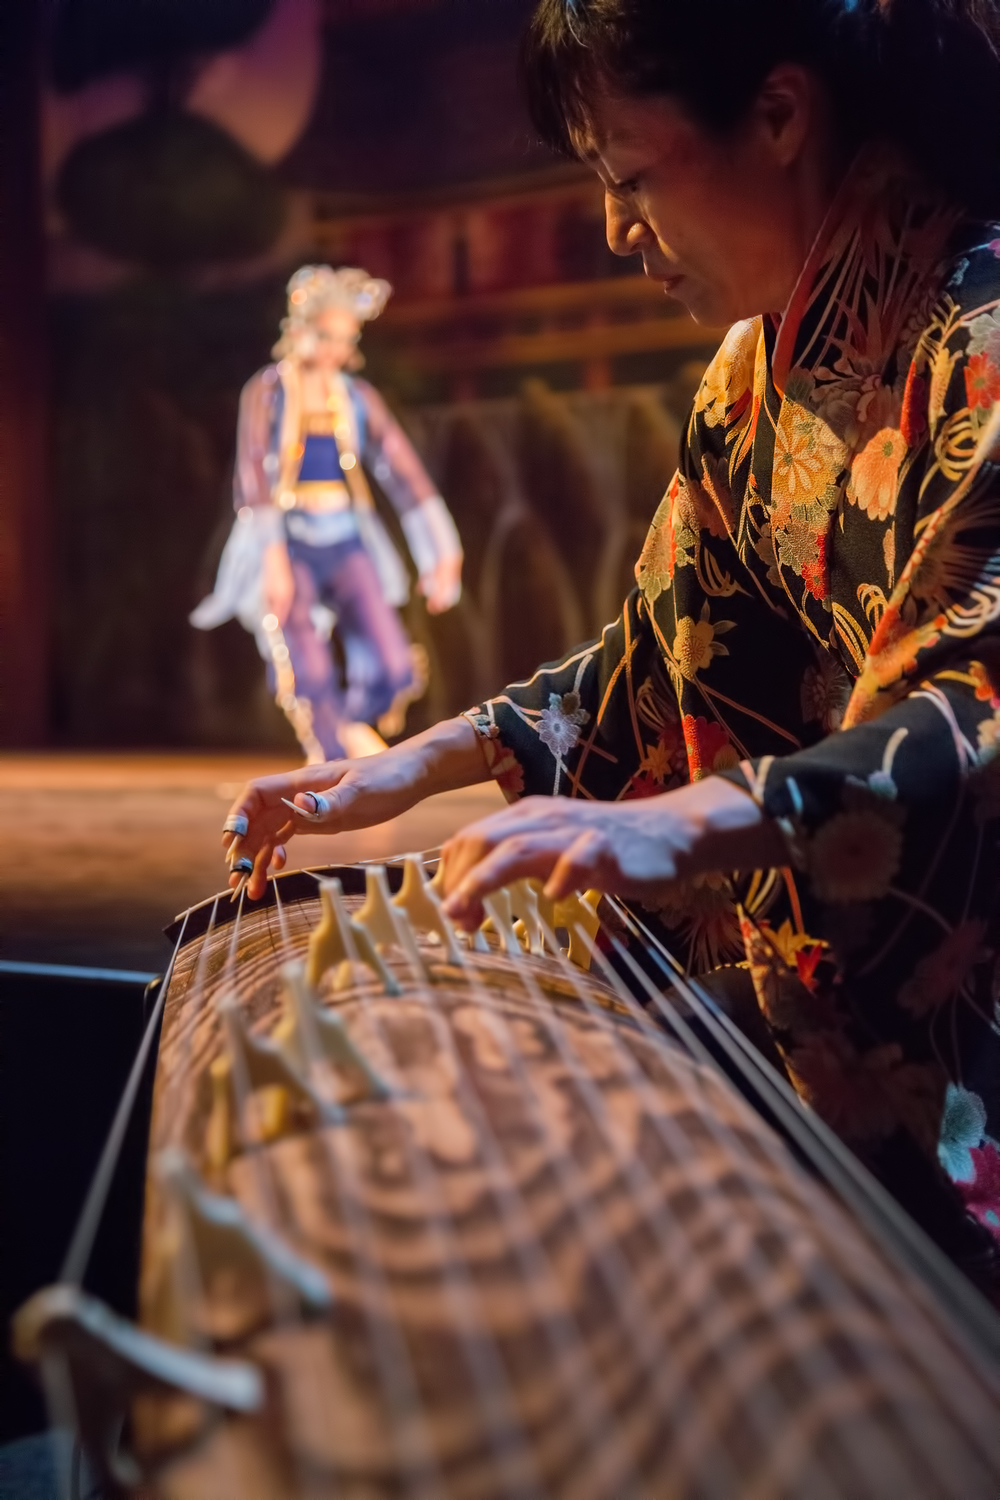 INTERNATIONAL KOTO PLAYER MITSUKI DAZAI  LIVE  IN THE PREMIERE OF BALLET FANTASTIQUE'S    TALES FROM THE FLOATING WORLD  :      HULT CENTER, 2014 // PHOTO: DAVID PUTZIER